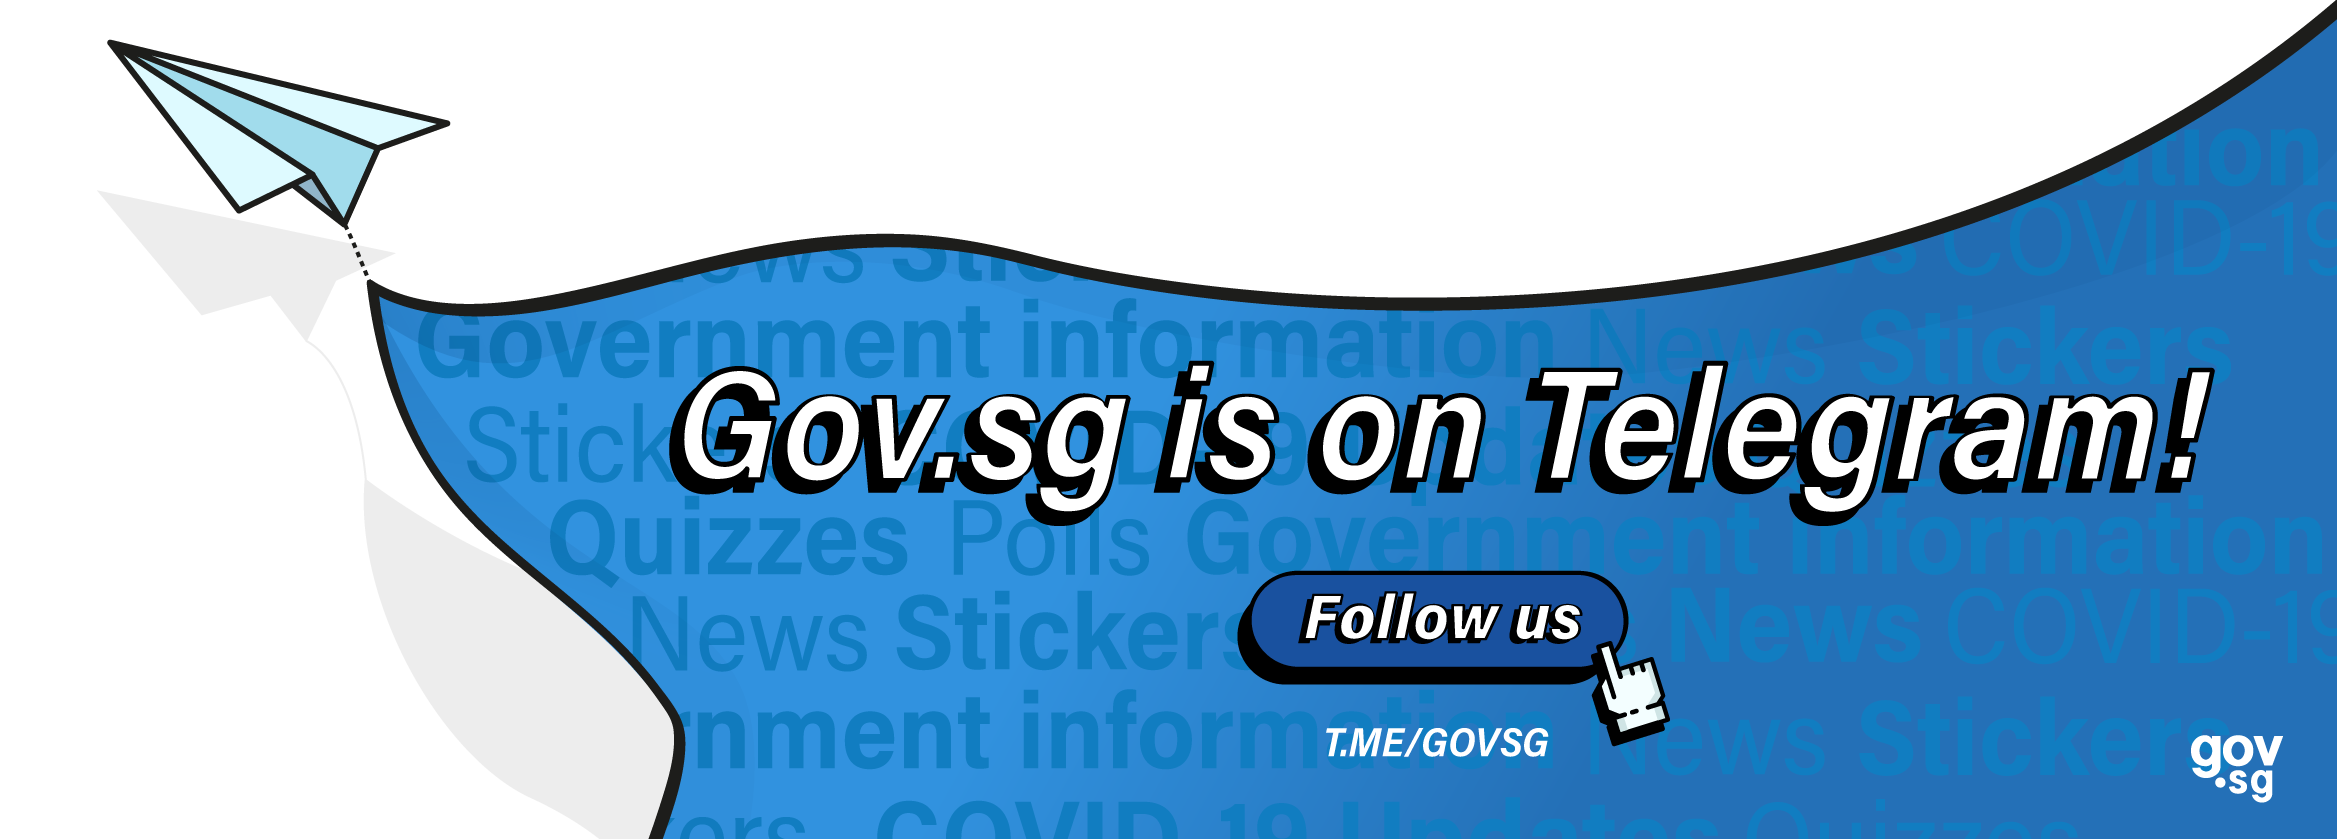 Gov.sg is on Telegram! Click here to follow us.